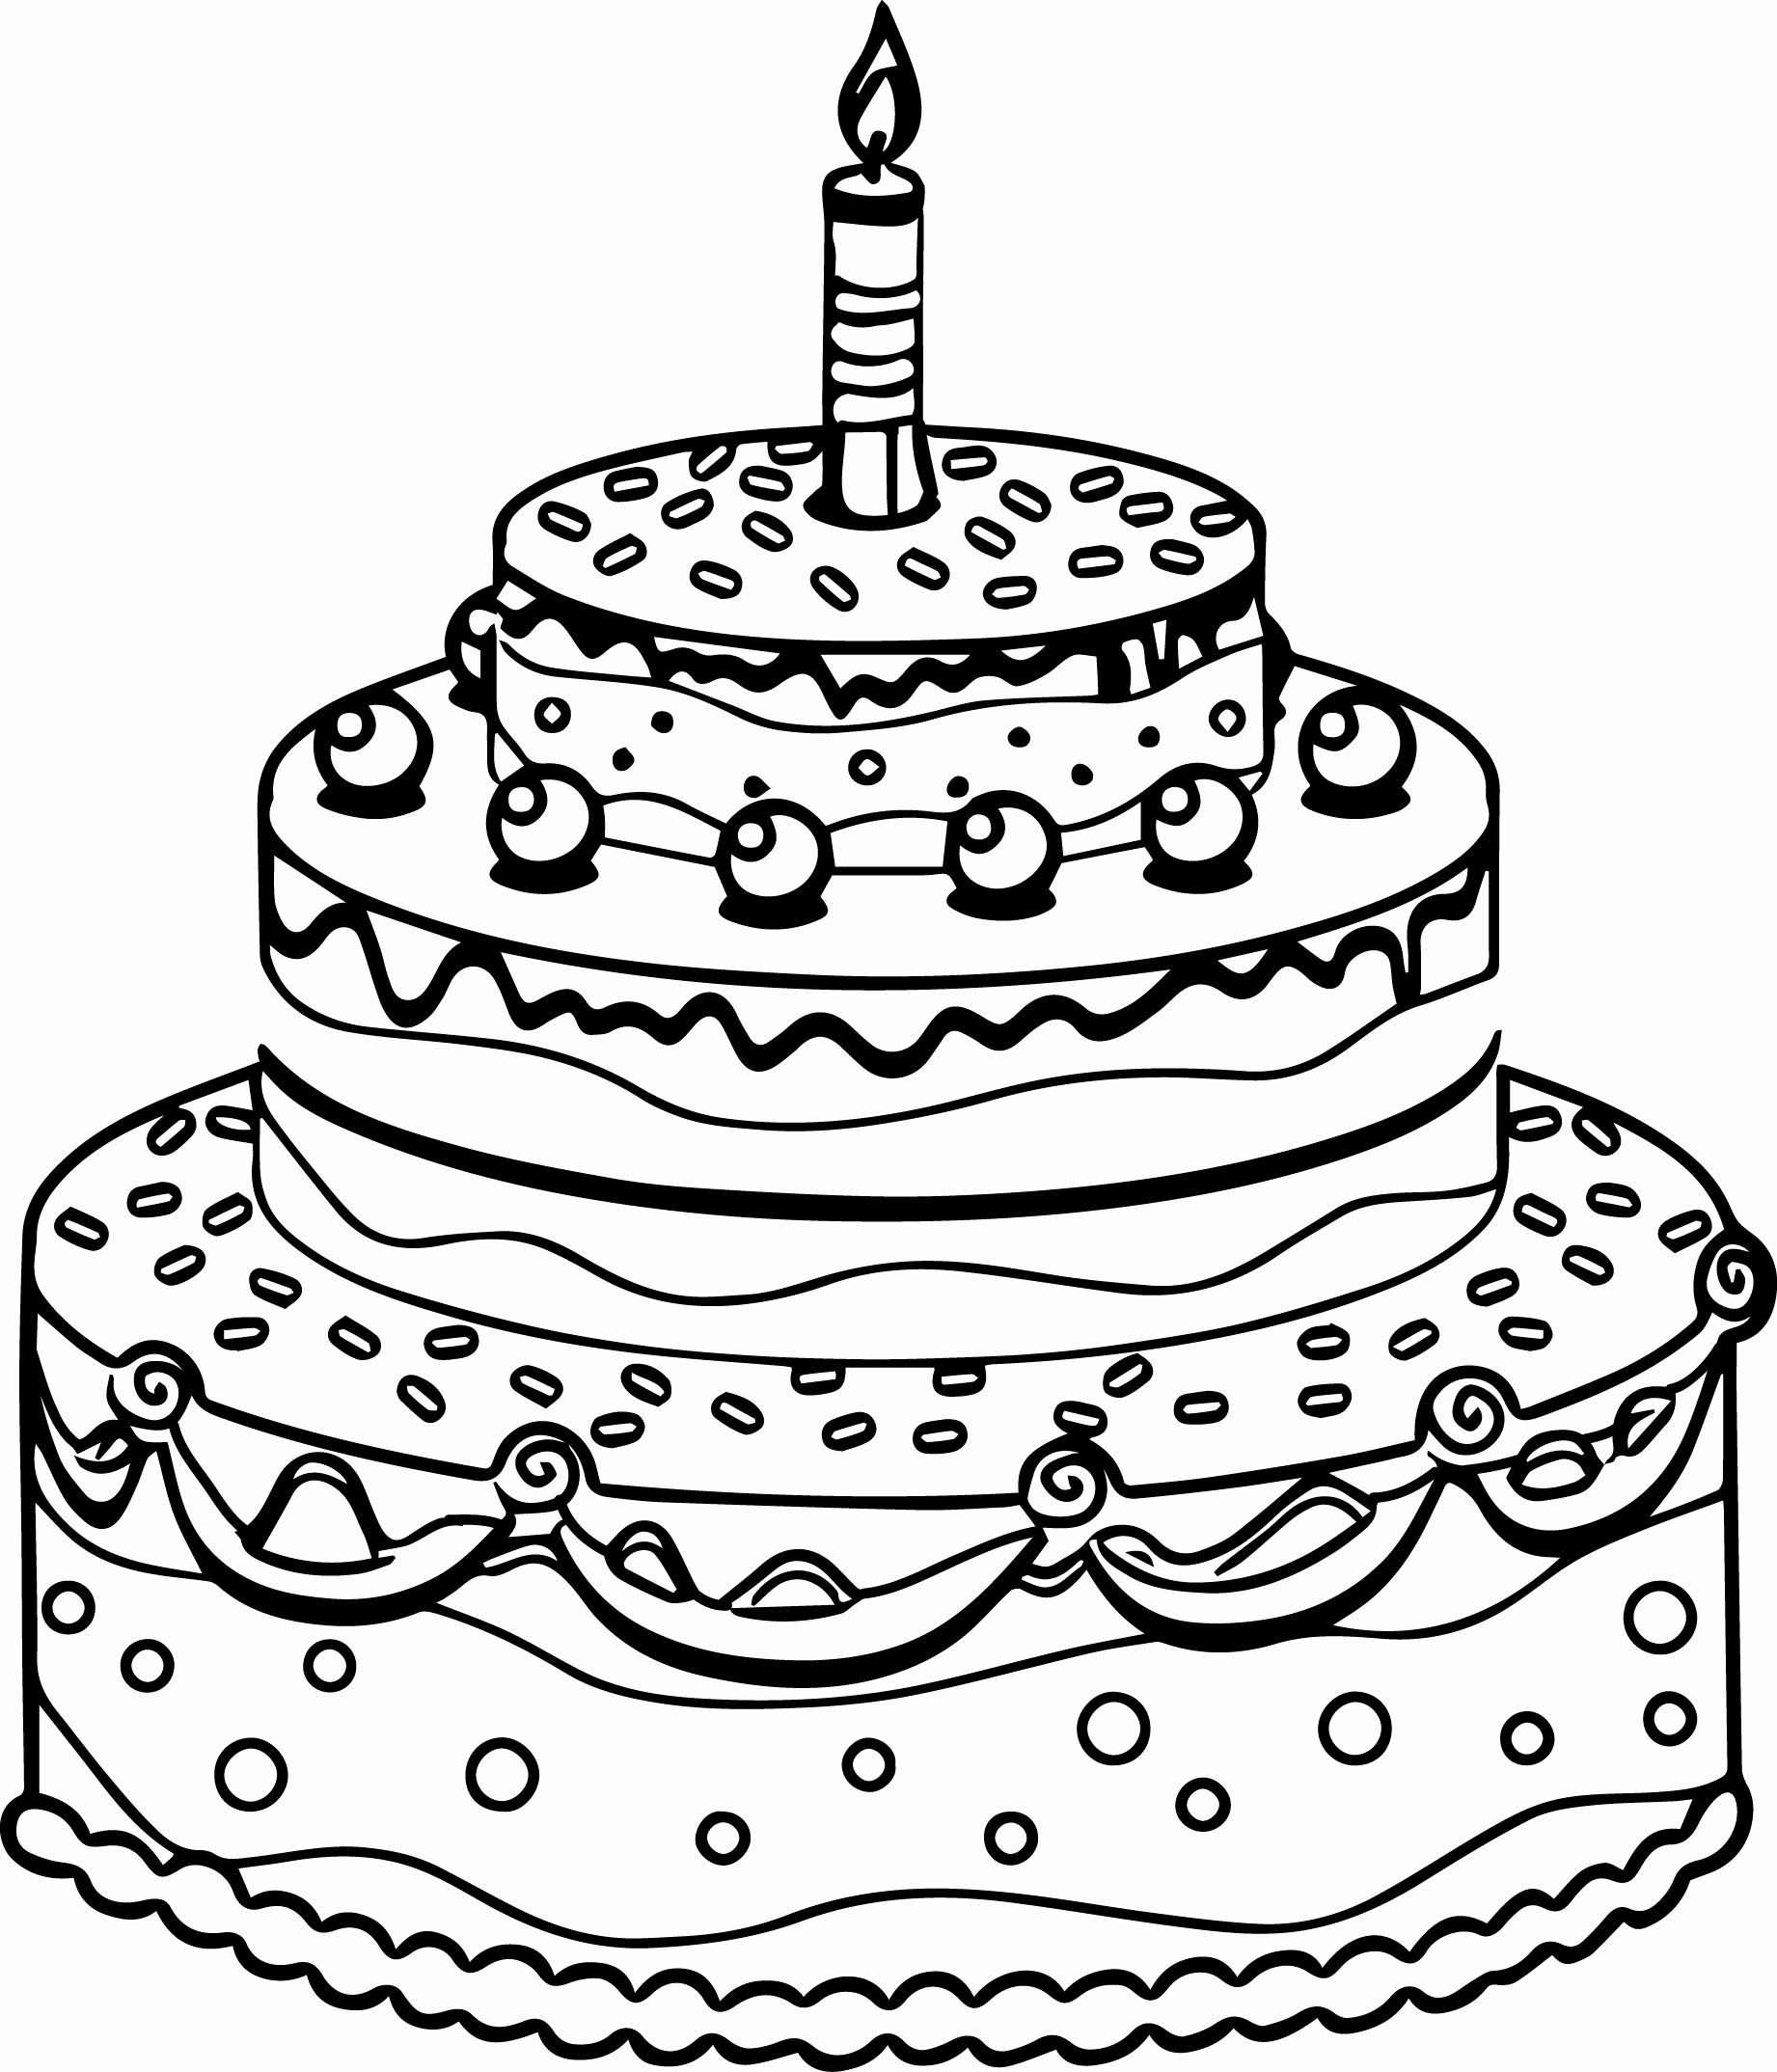 printable birthday cake images birthday cake coloring page at getcoloringscom free cake birthday images printable